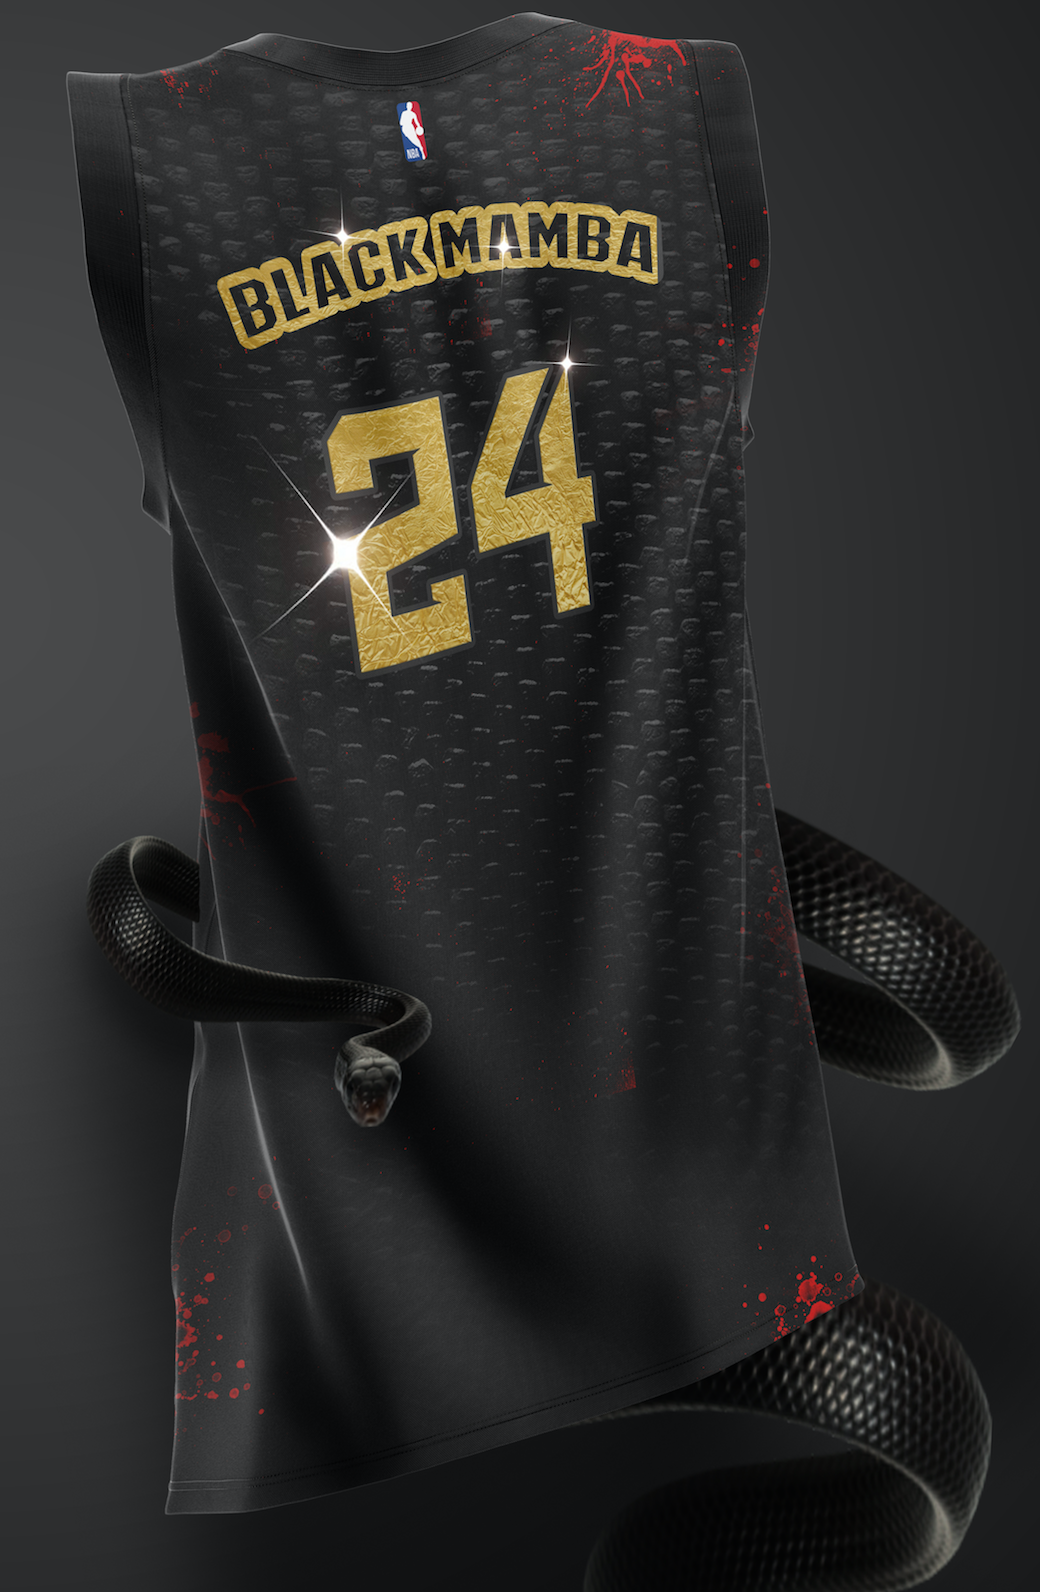 MAMBA DAY JERSEY CONCEPT on Behance